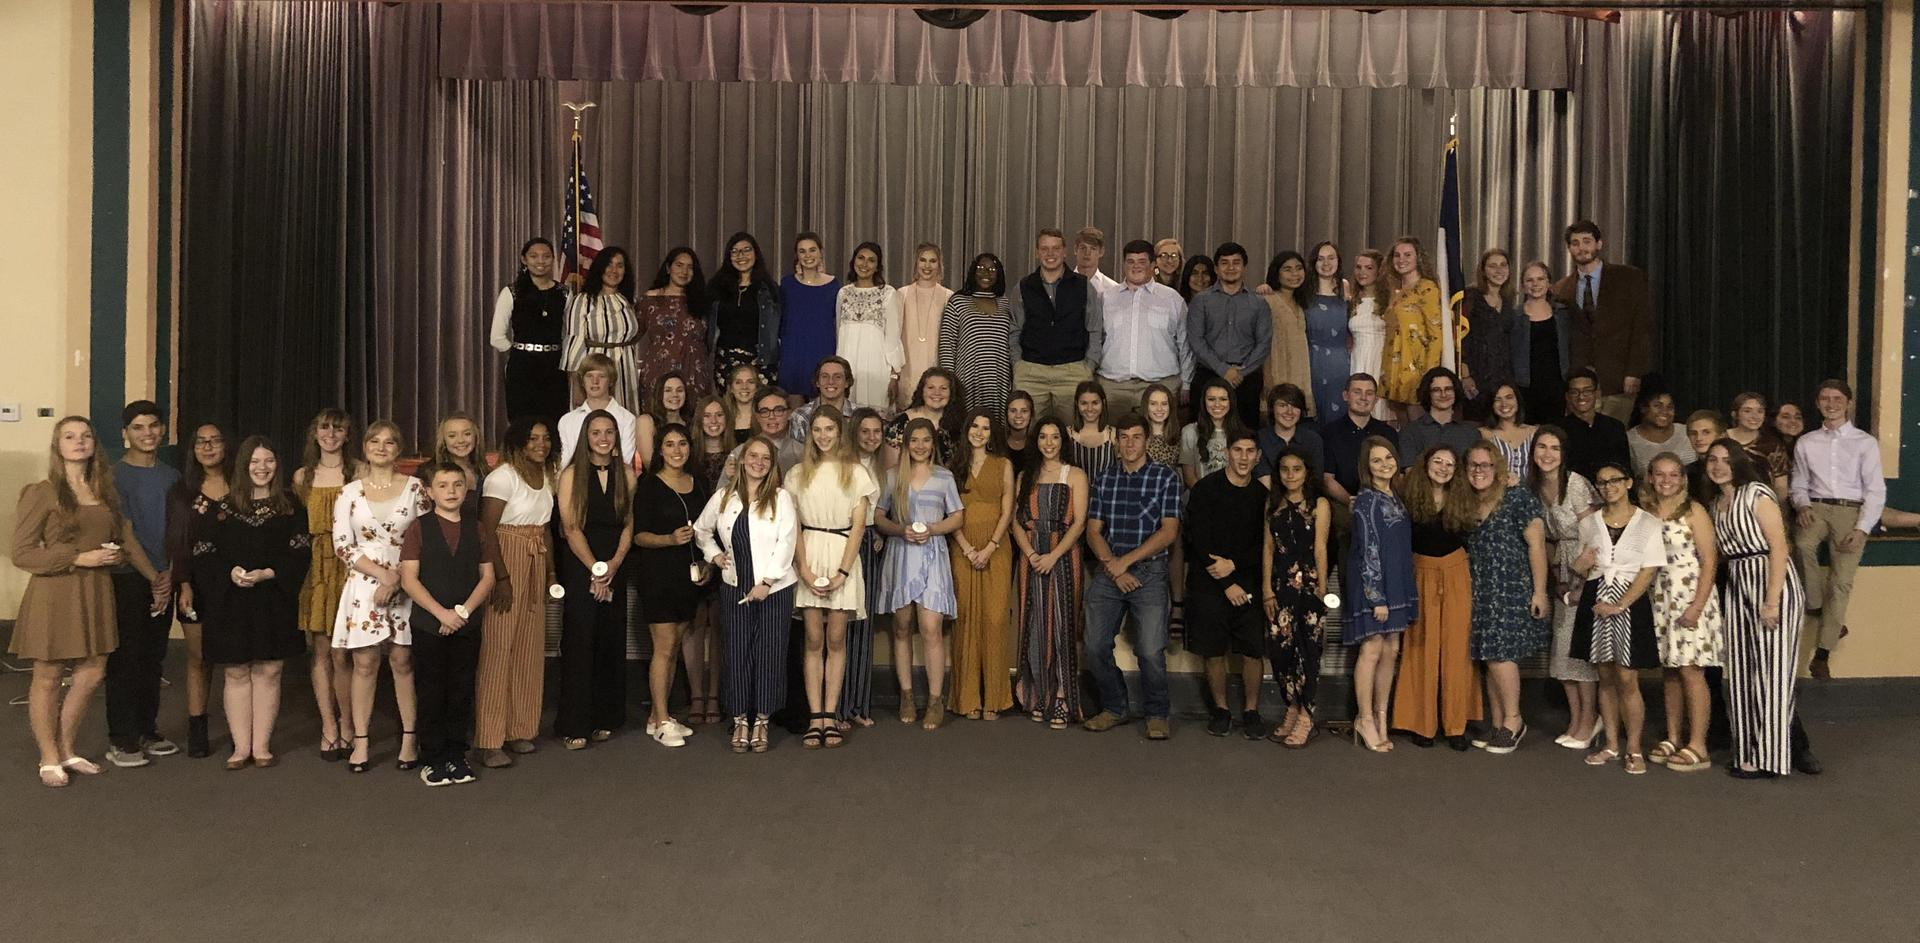 2020 NHS Induction Ceremony